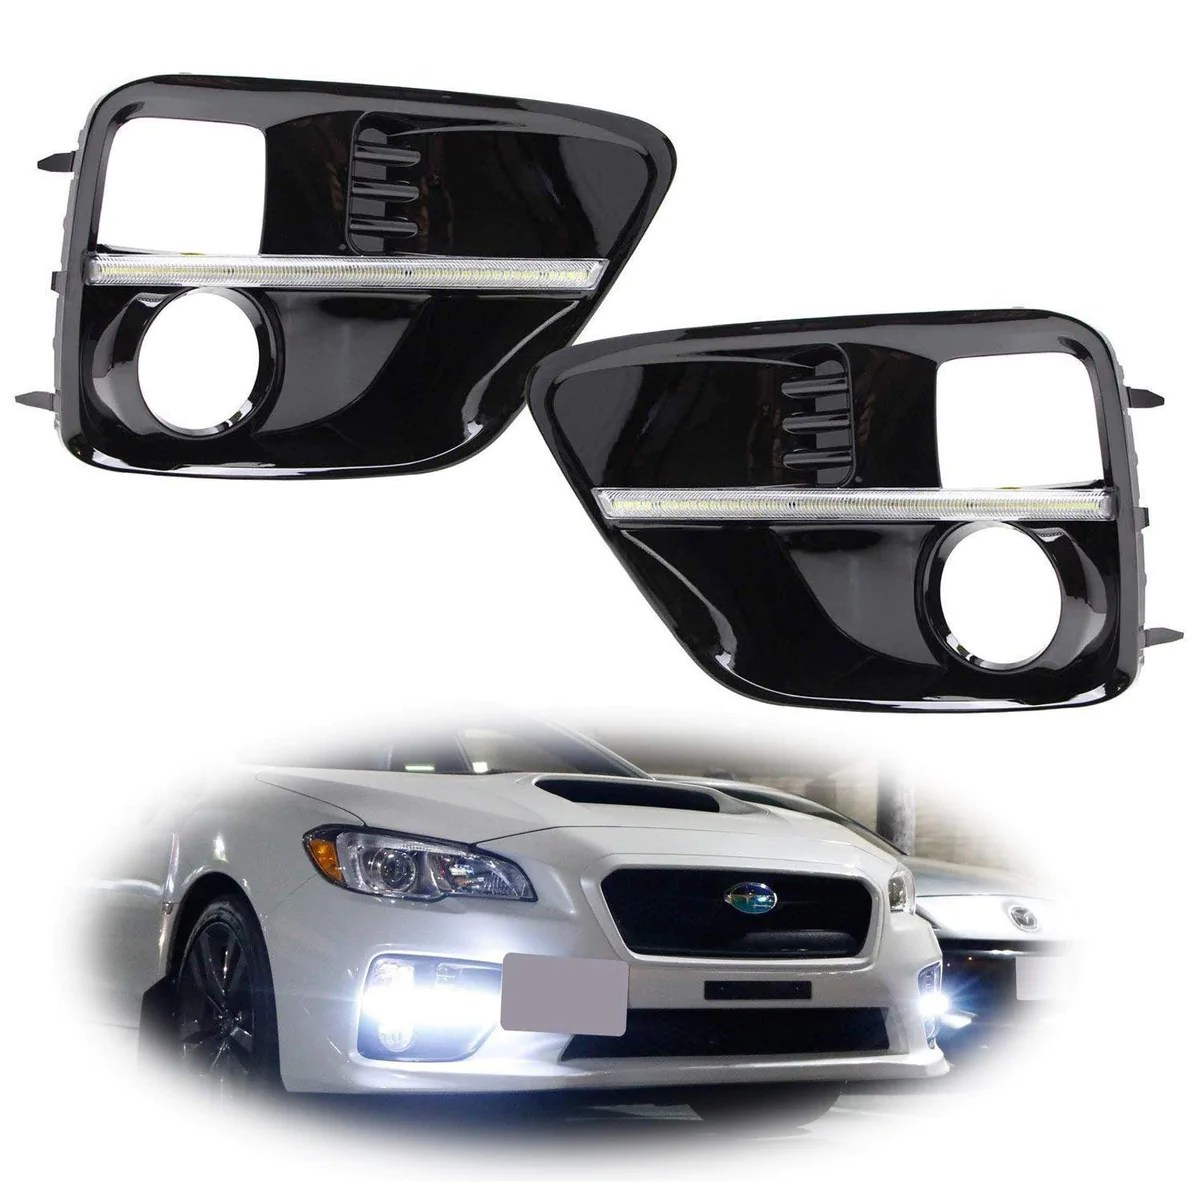 hight resolution of xenon white or switchback led daytime running lights for 2015 2017 subaru wrx sti w jdm style piano black finish fog lamp bezels xenon white led as drl